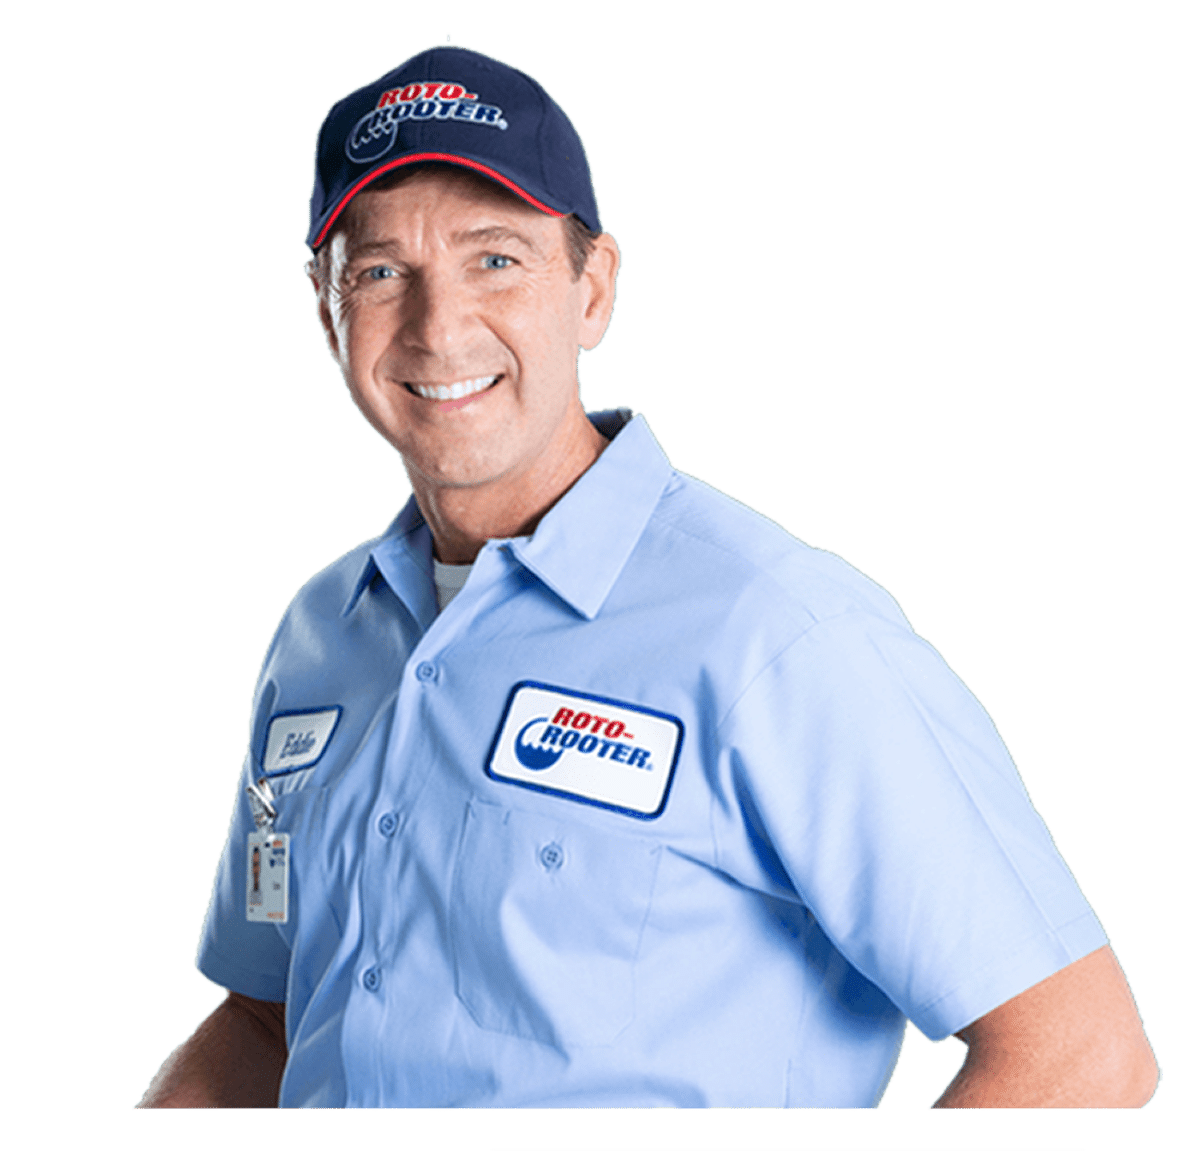 Roto Rooter technician